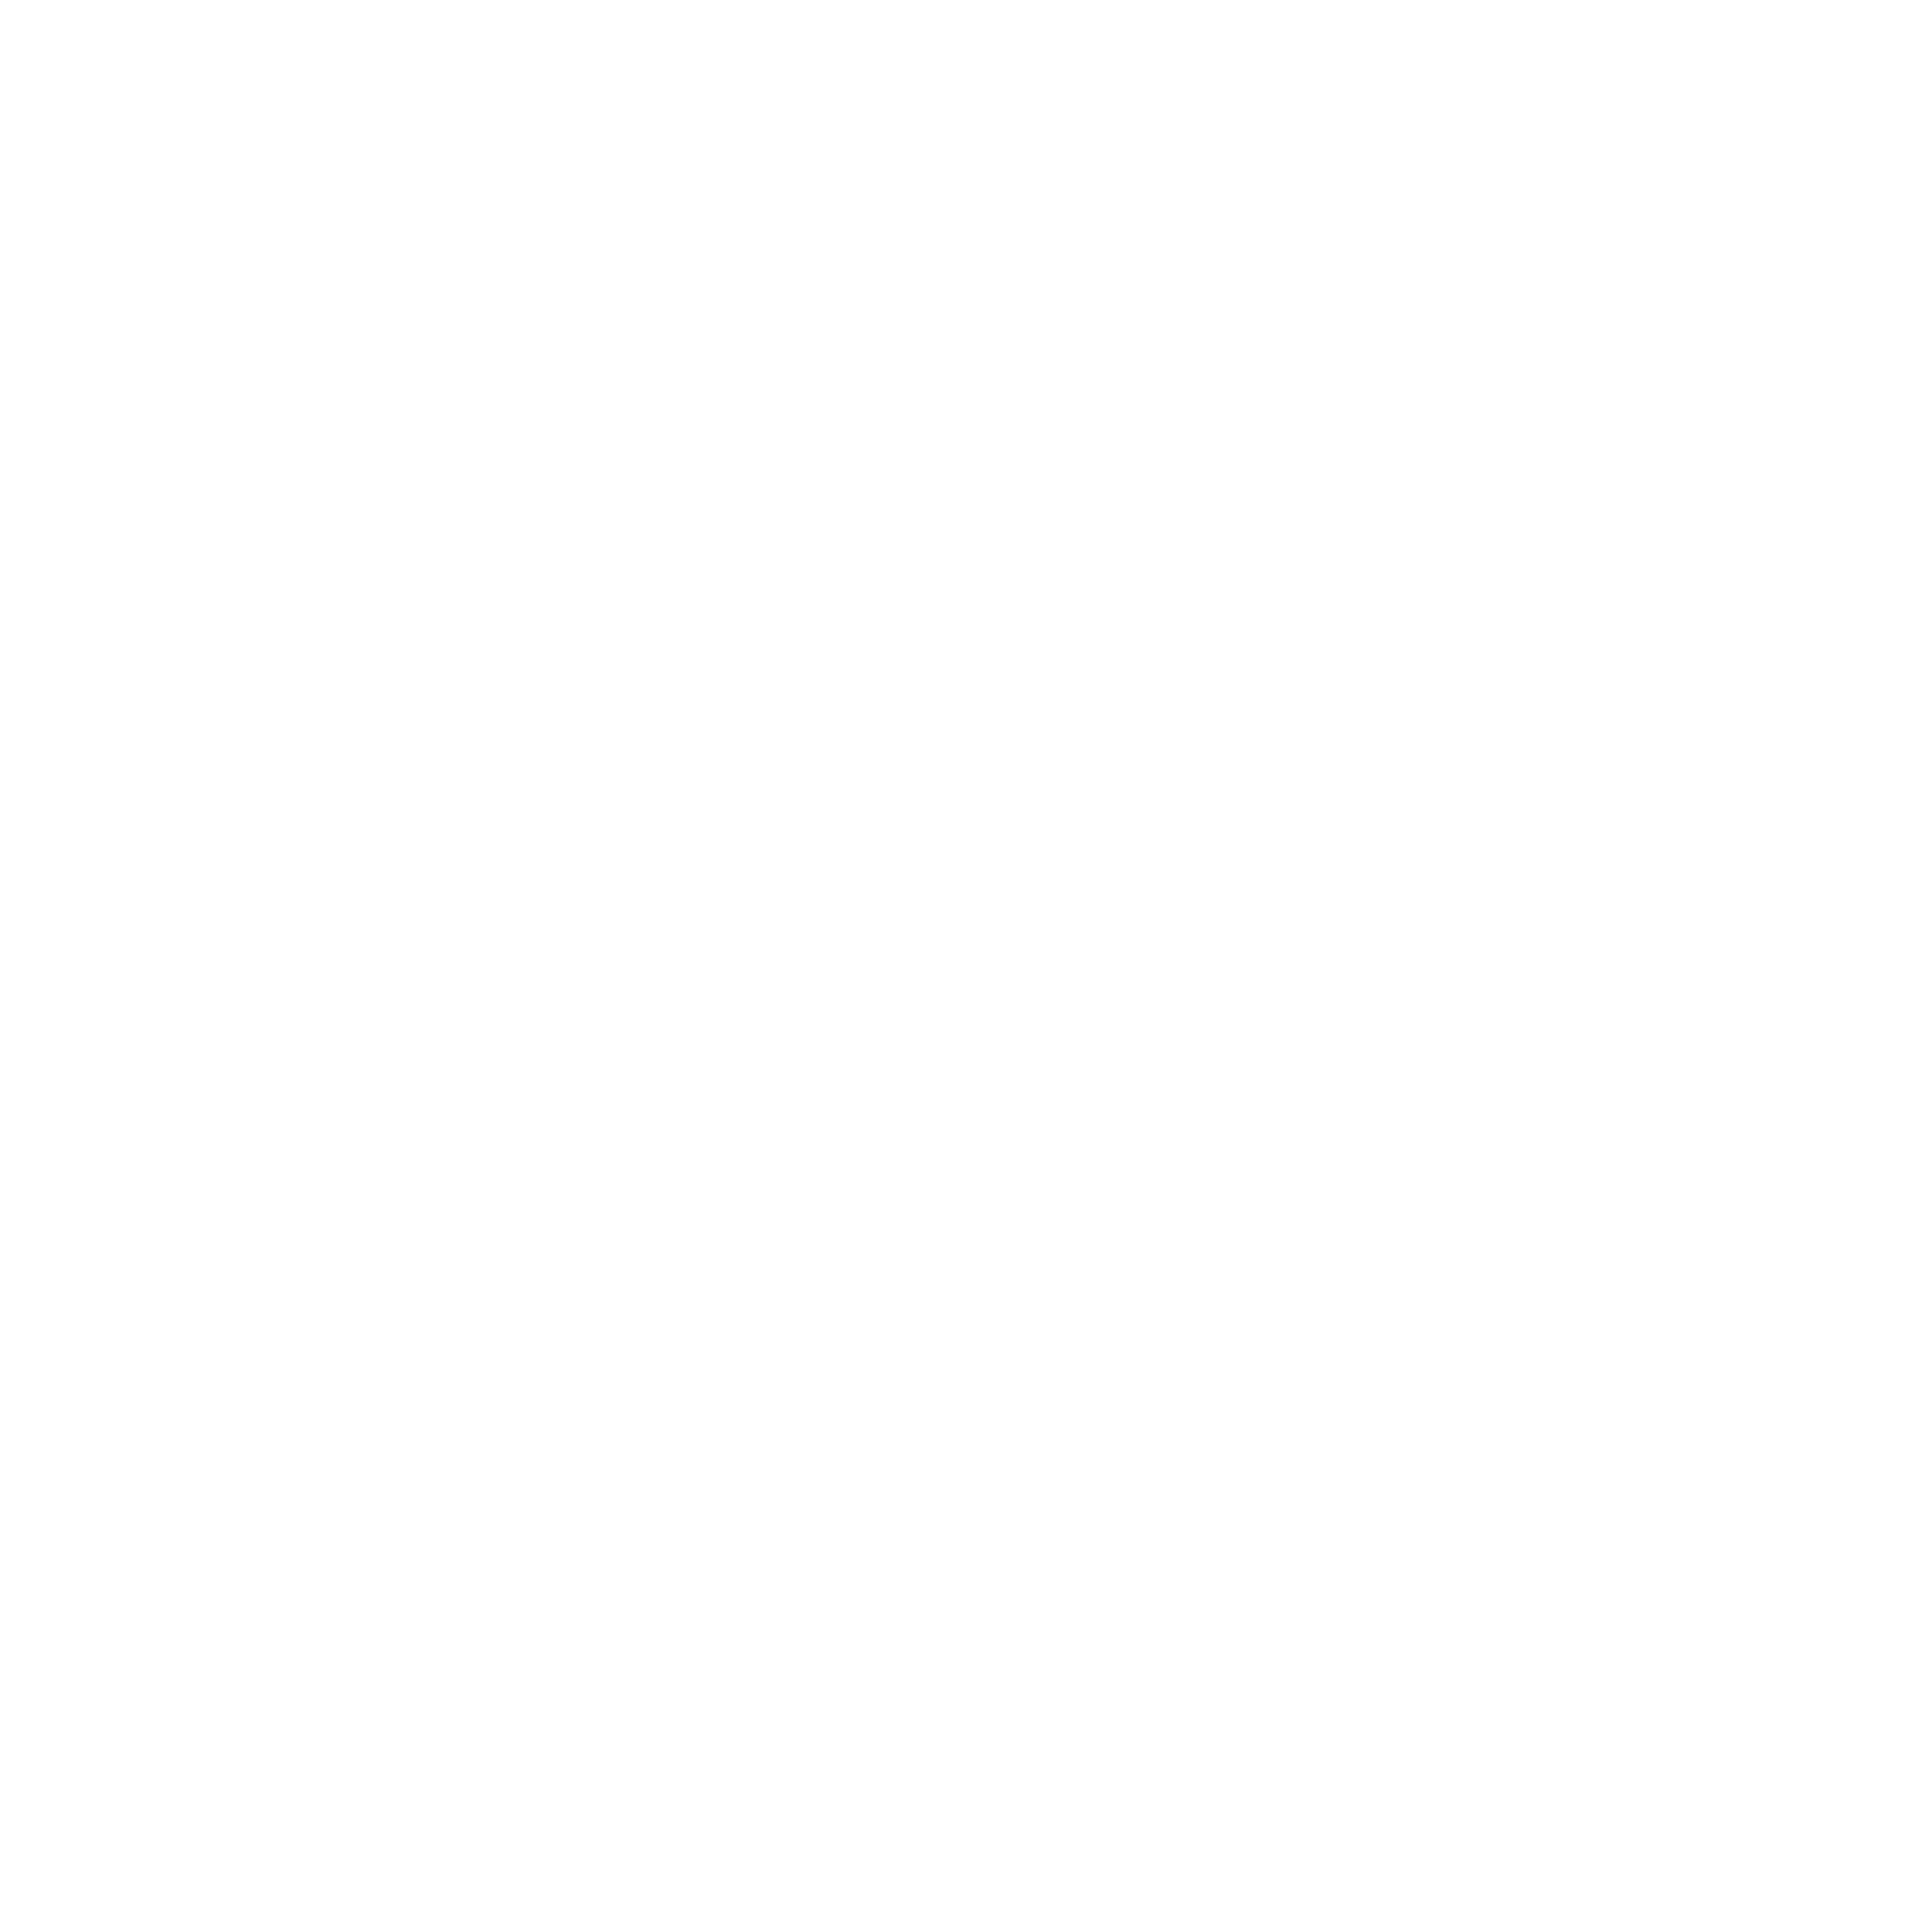 MAD KIDS - We had the pleasure of meeting fellow Western Australian filmmakers,Mad Kids at CinèfestOZ International Film Festival in 2015. Since then we've kept in touch with Lauren, Matt and Henry who have provided us with advice and expertise when it comes to producing and pitching comedy projects and we have recently secured $70,000 production funding thanks to Screenwest and are set to go into production in March 2018!